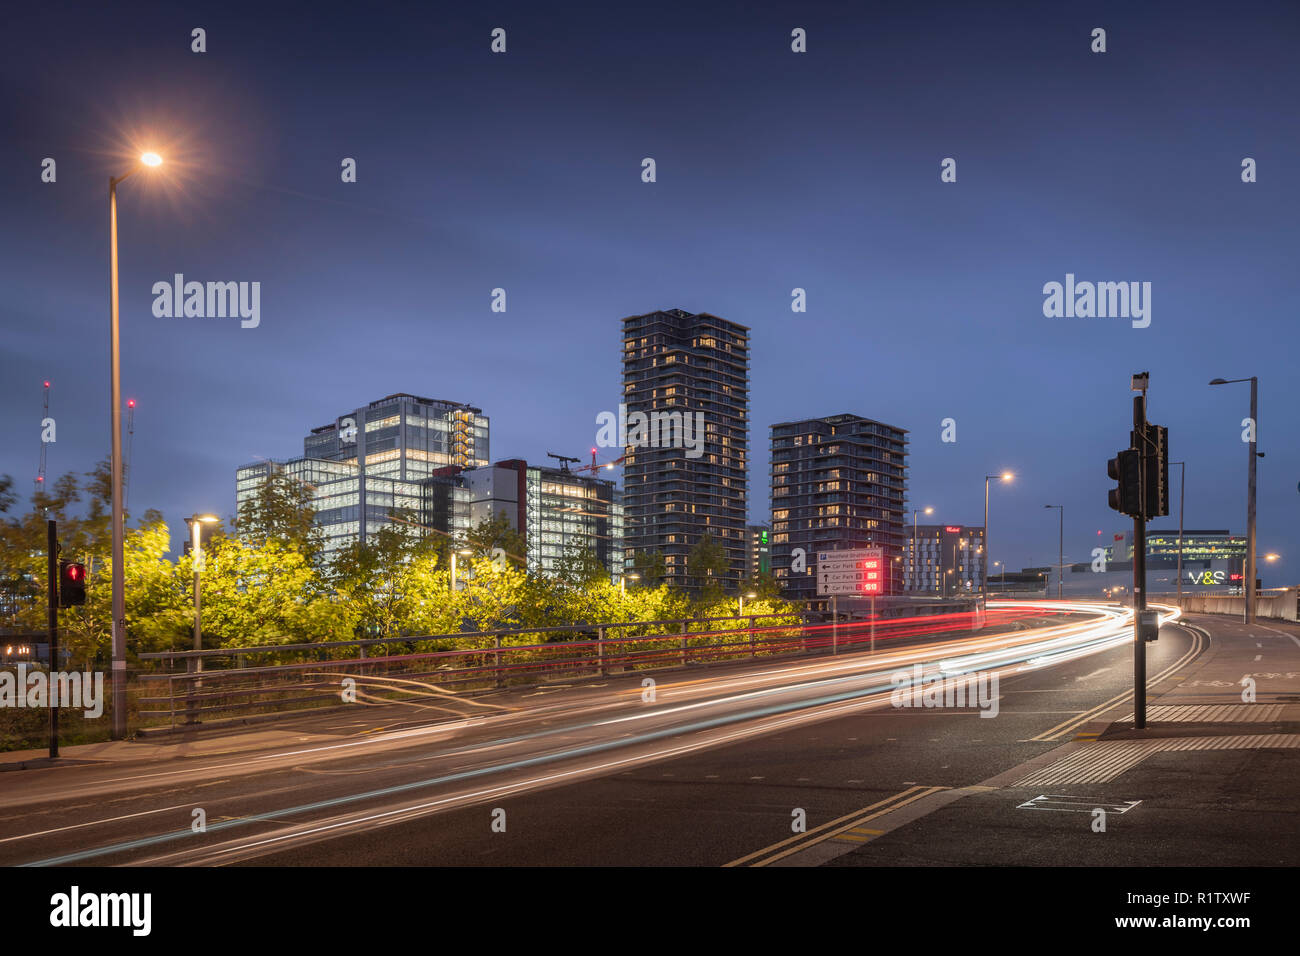 Glasshouse Gardens development and The International Quarter in Stratford, East London at night. - Stock Image